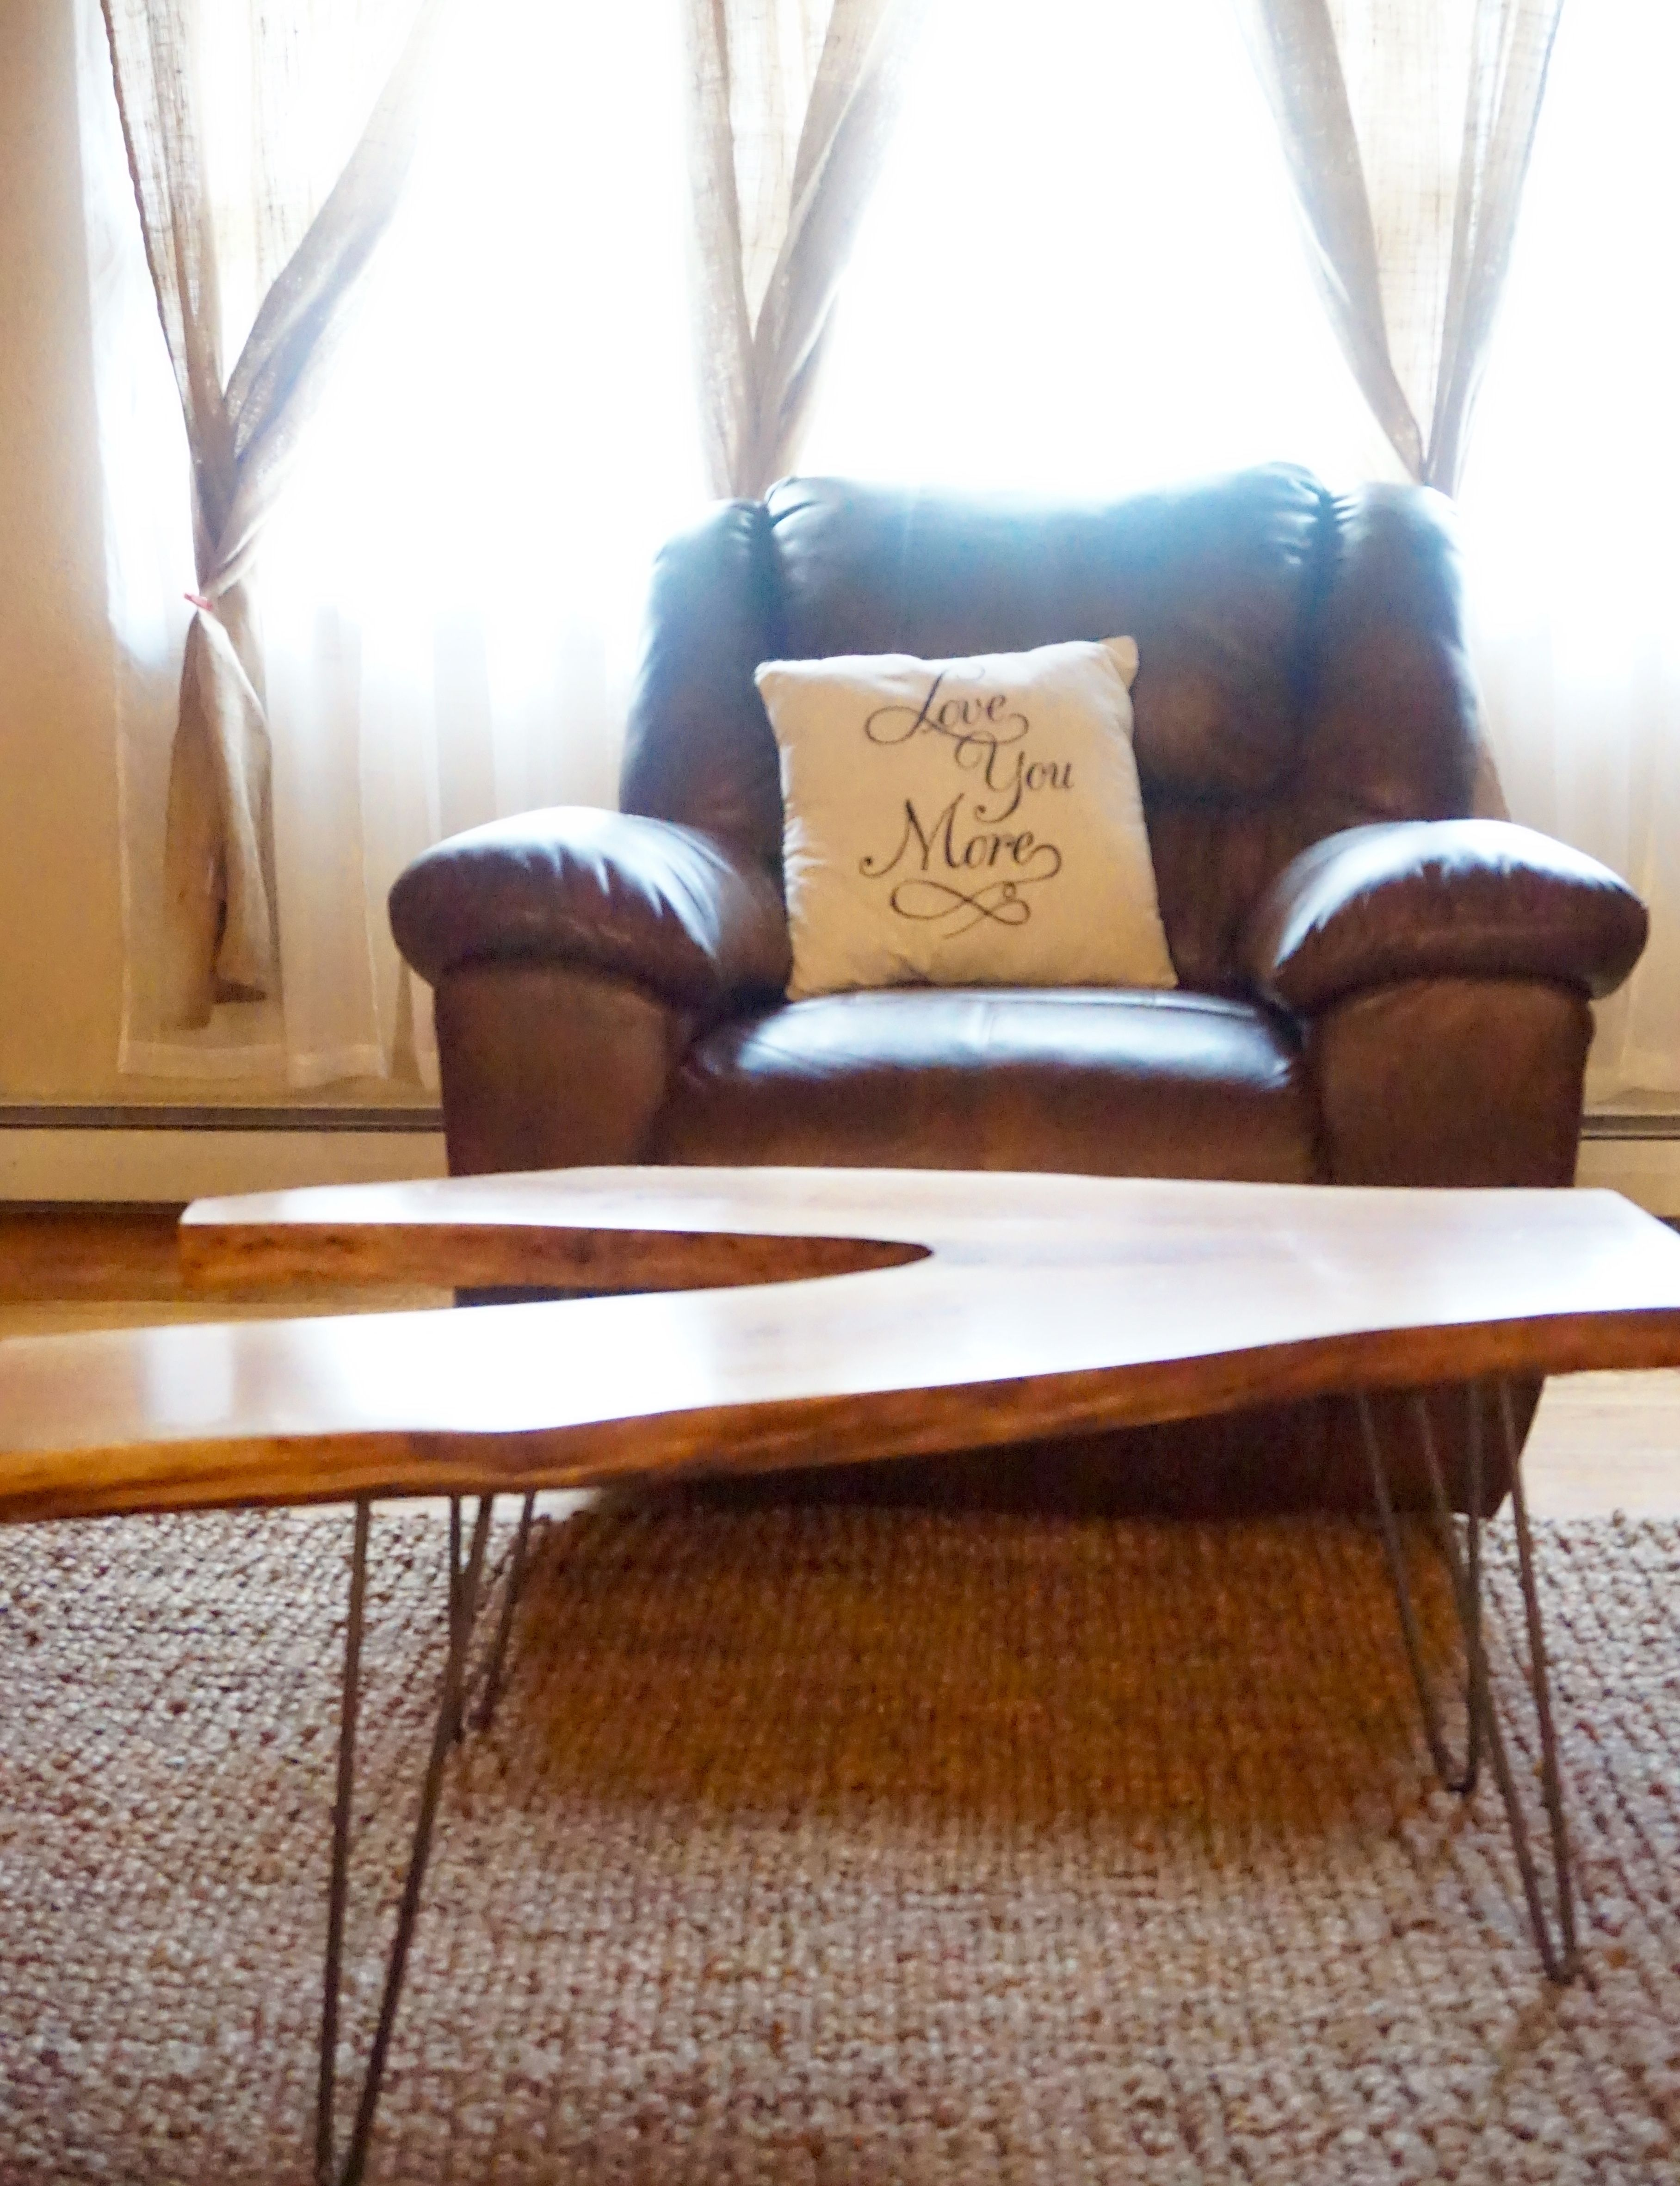 Live edge coffee table kiln dried hardwood slabs and furniture from cds hardwoods on etsy